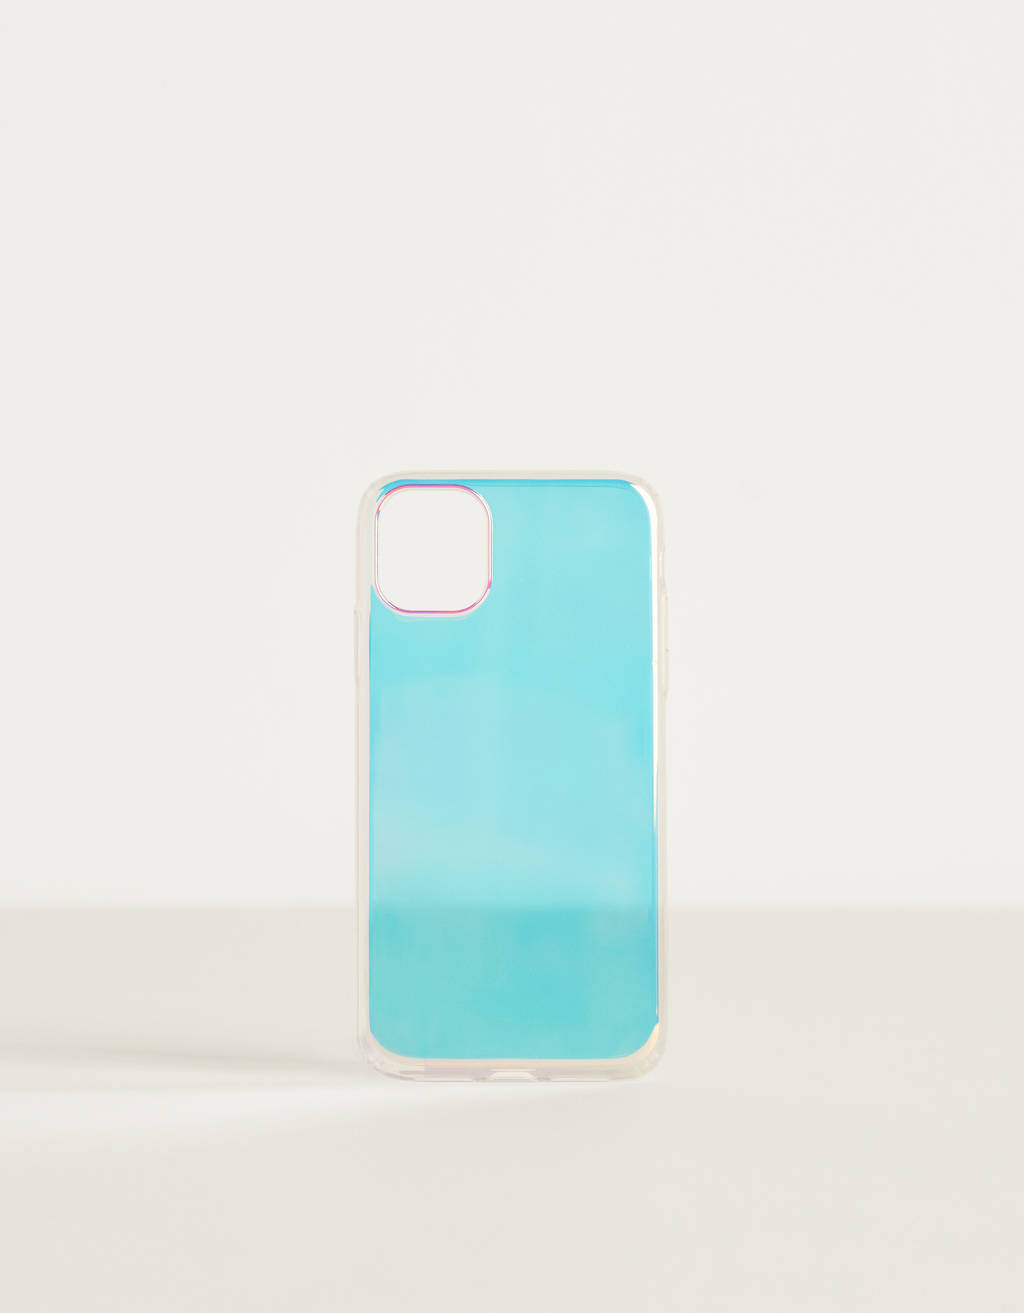 Iridescent iPhone 11 Pro case